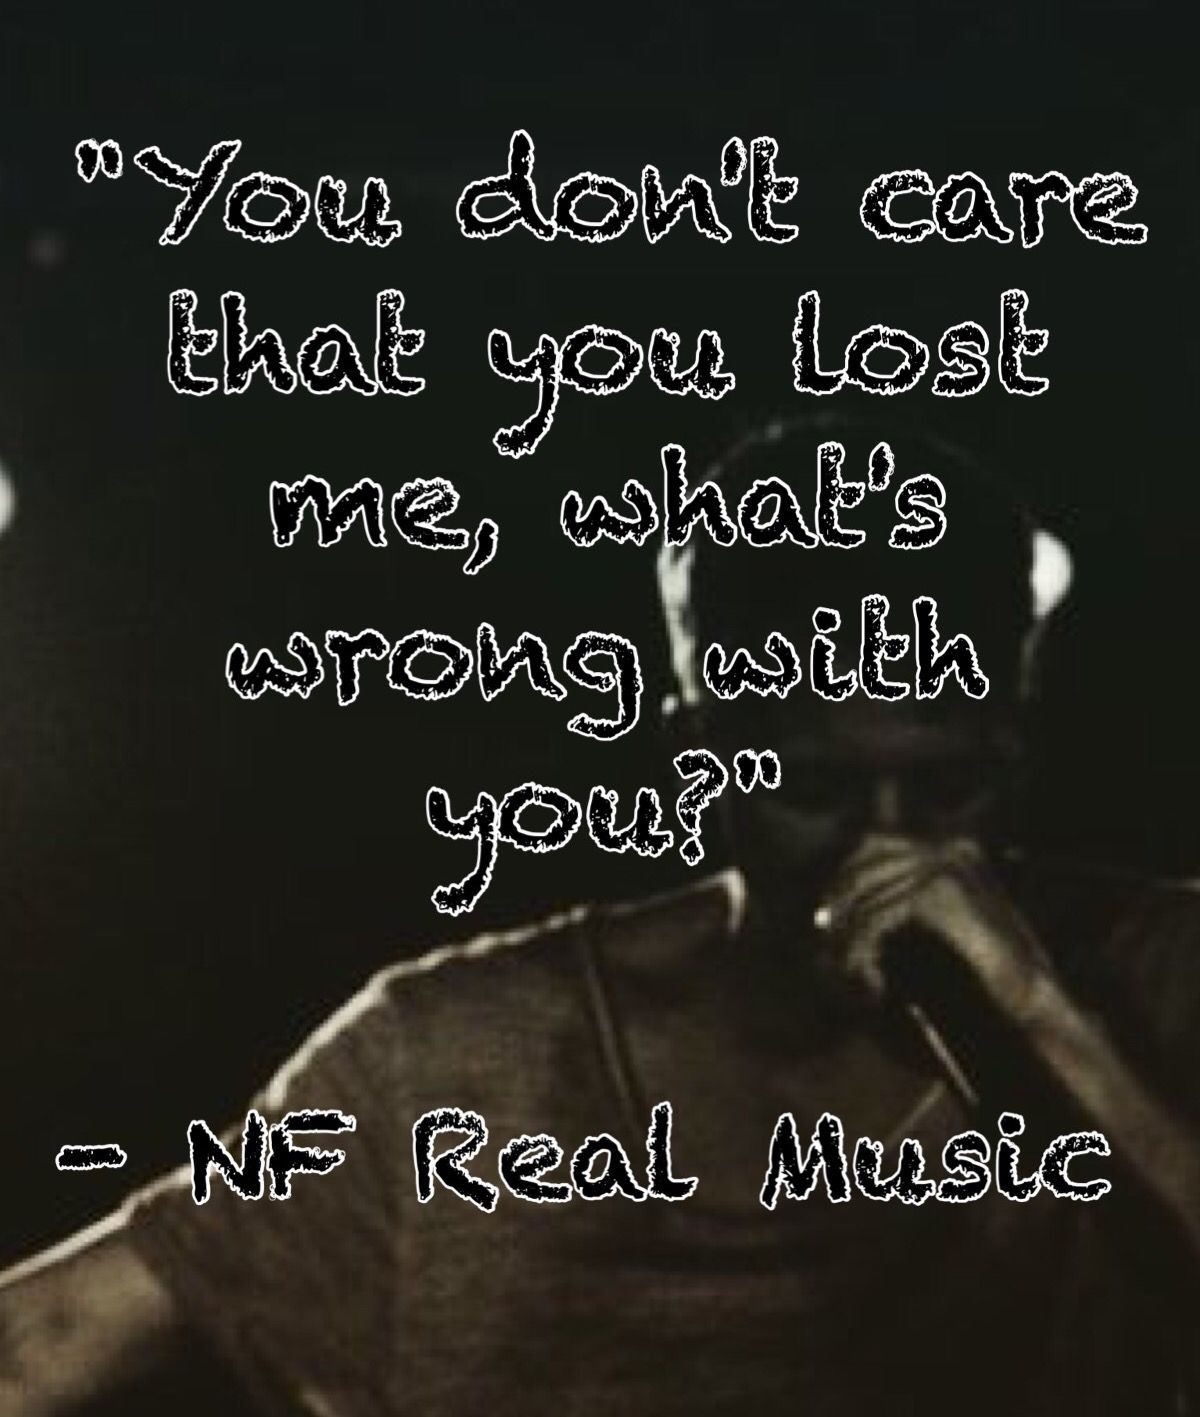 Nf I Just Wanna Know Words Worth While Nf Real Music Lyrics